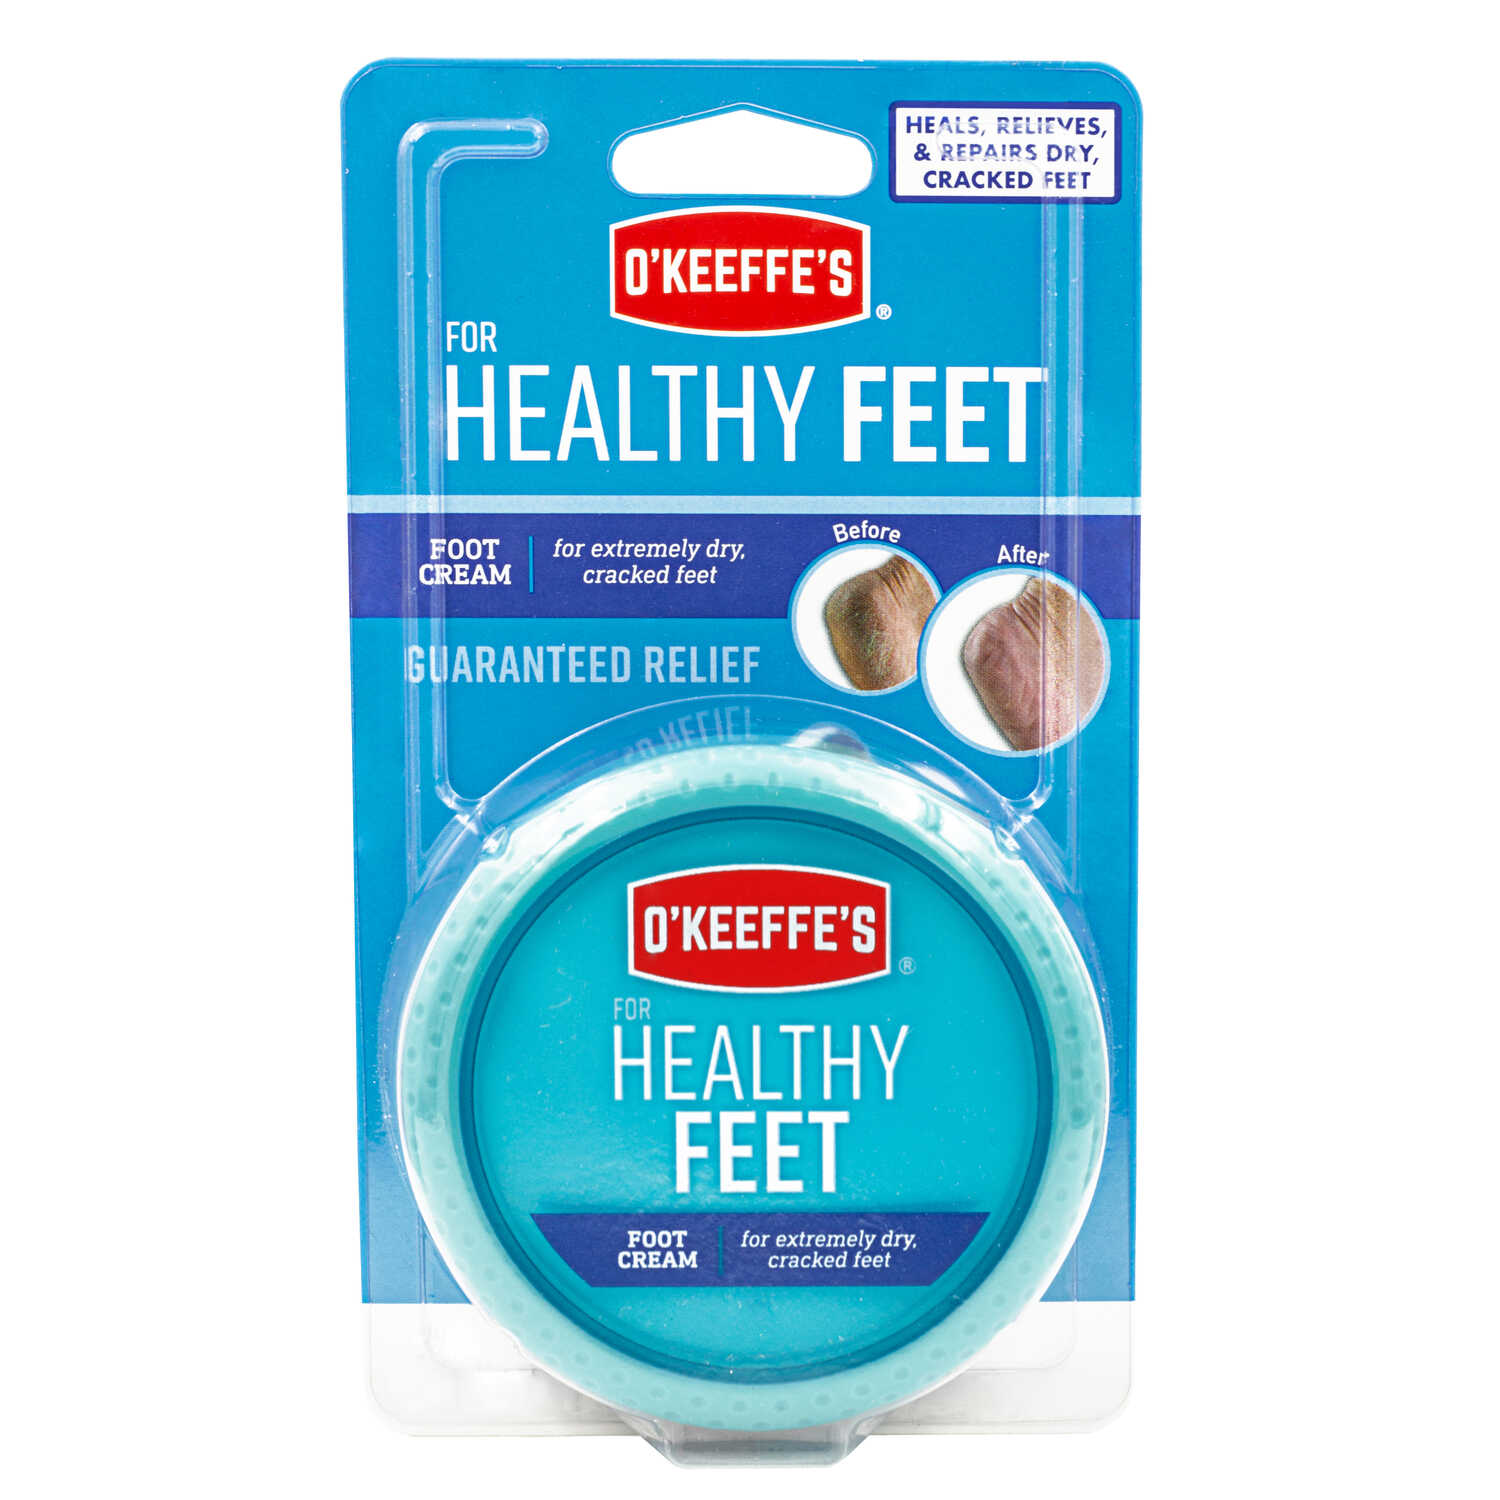 O'Keeffe's  Healthy Feet  No Scent Foot Repair Cream  3.2 oz. 6 pk